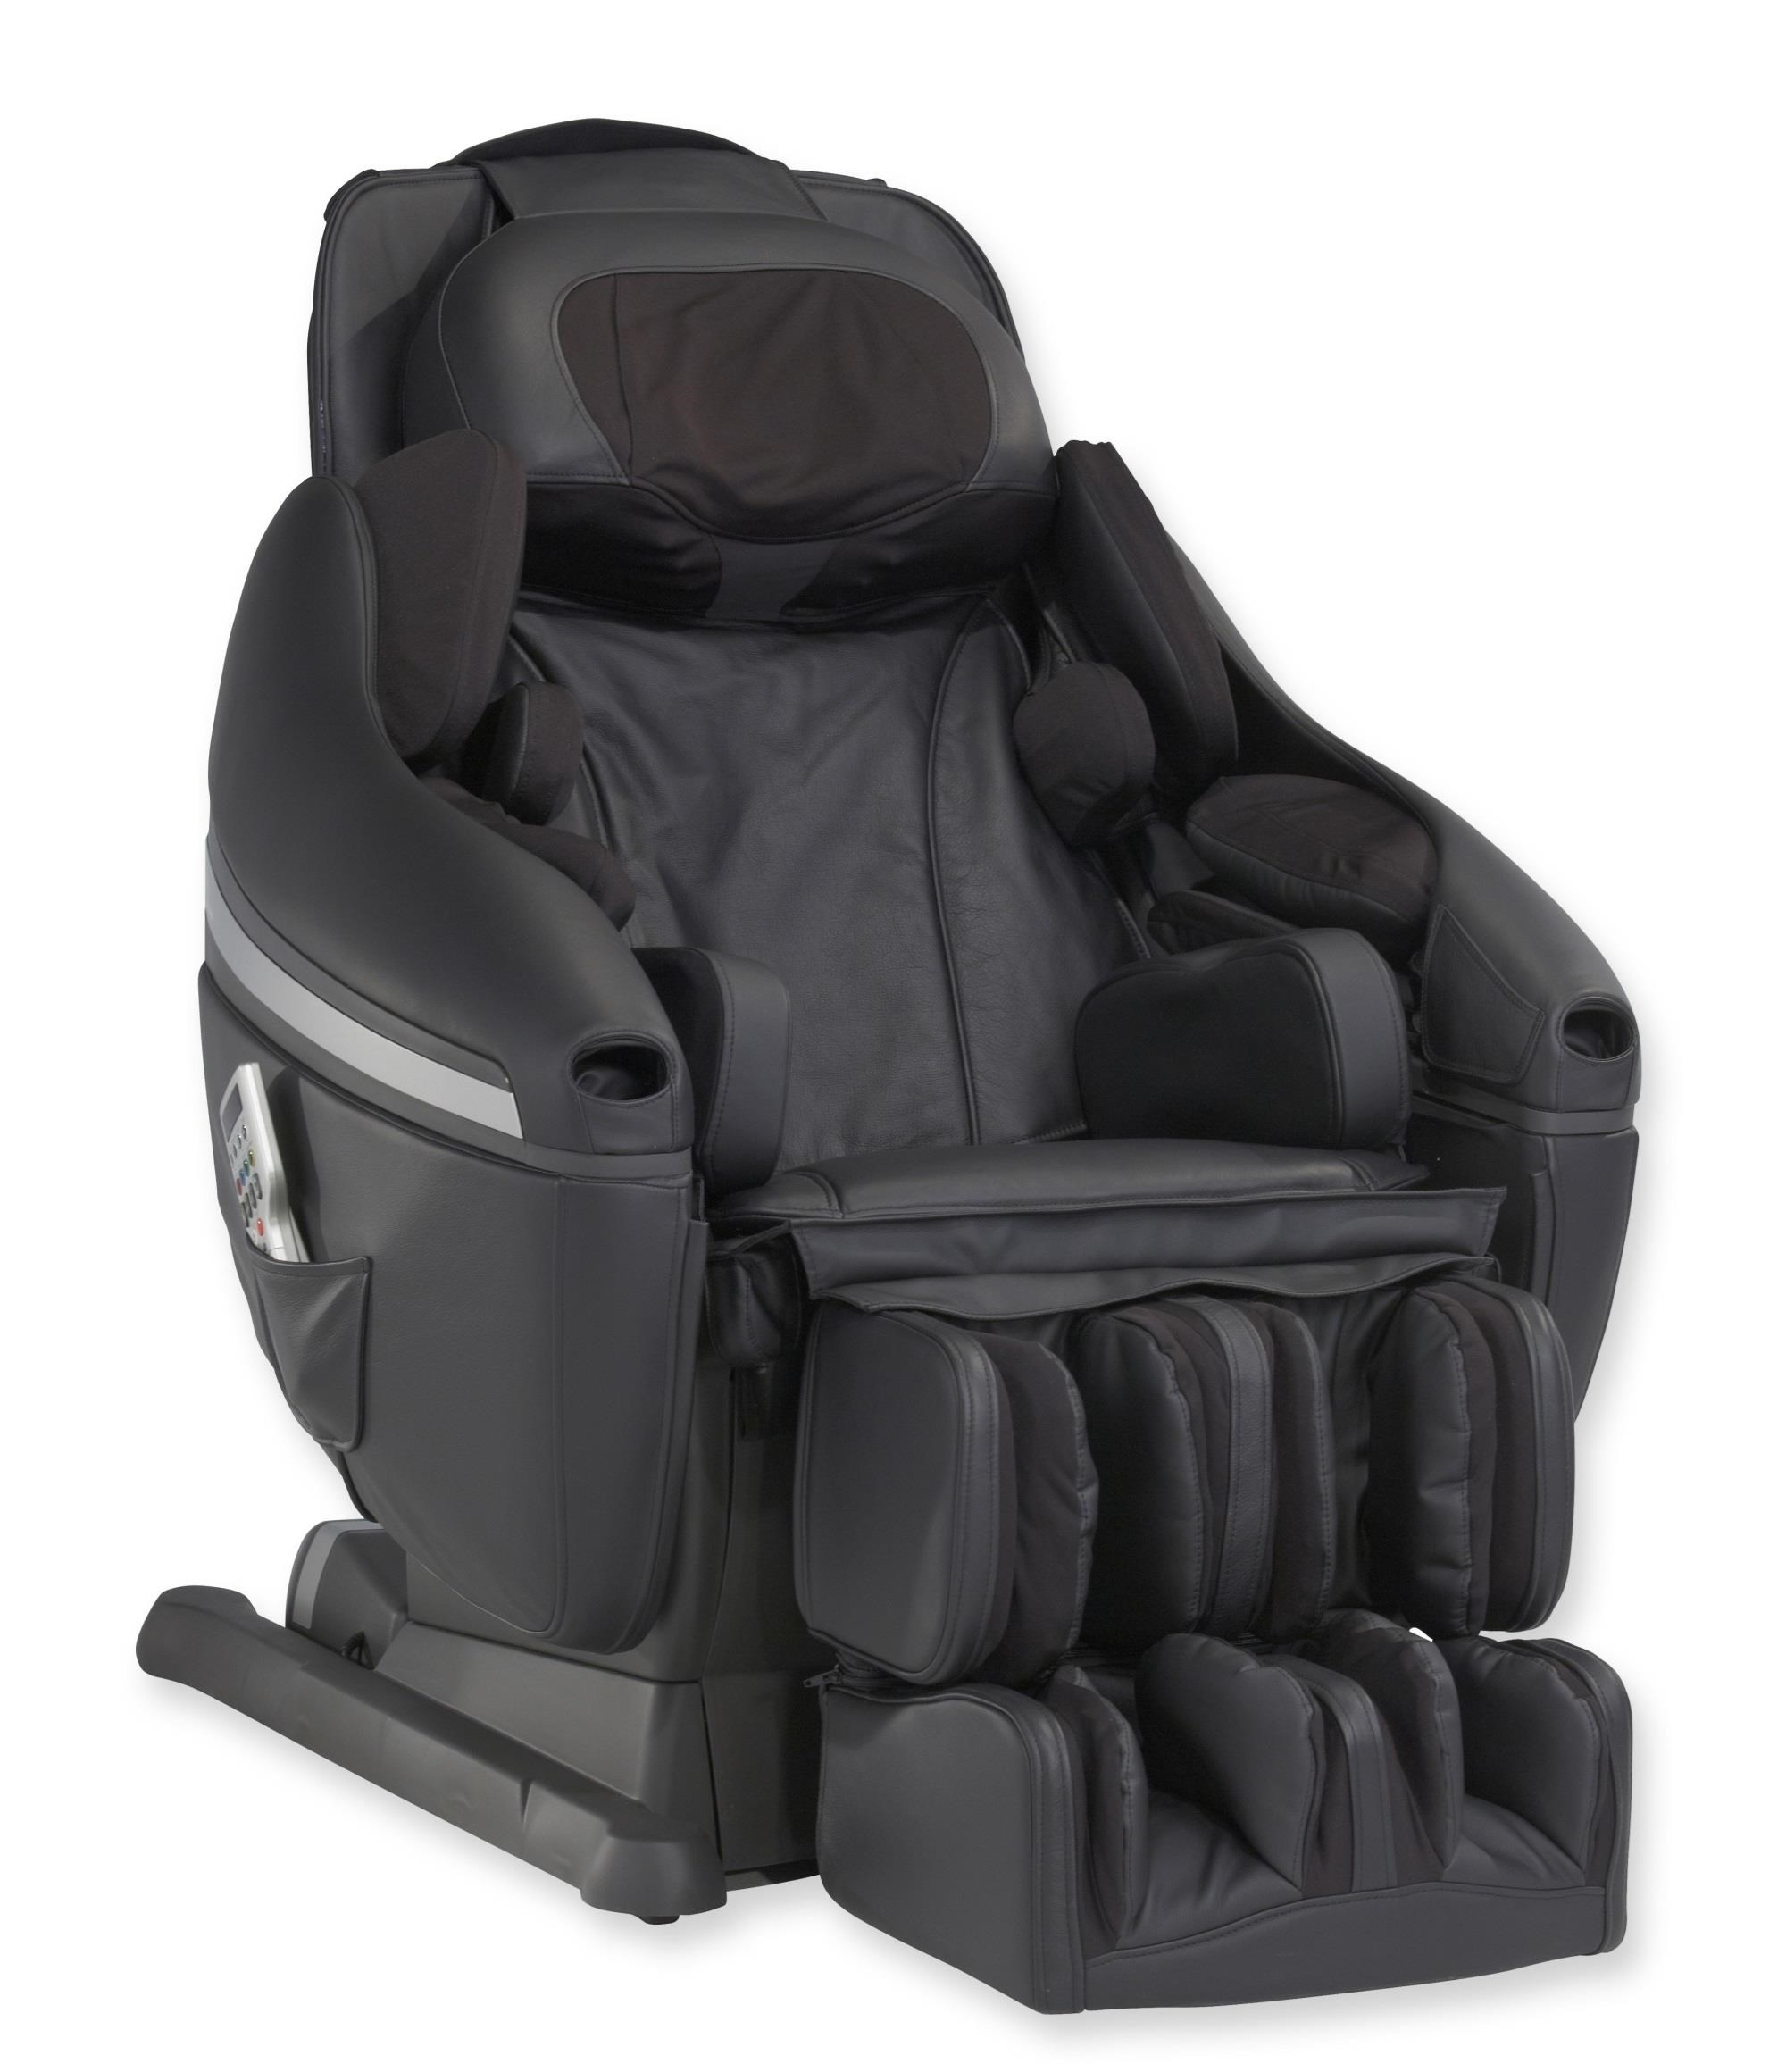 Inada Dreamwave Massage Chair with Heat - Item Number: HCP-1101A-PU BK